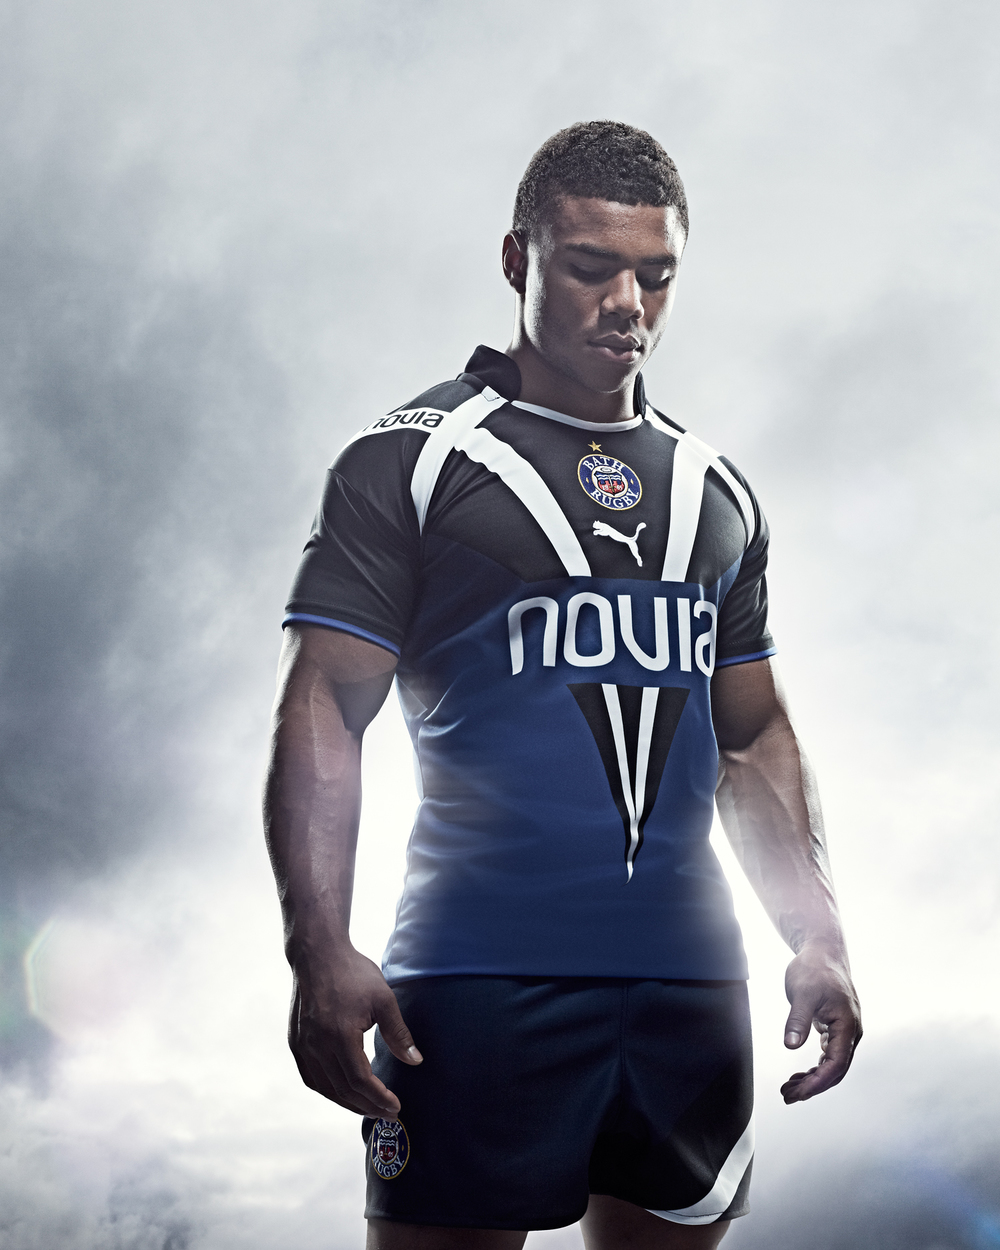 kyle eastmond 2012 cropped v1.jpg